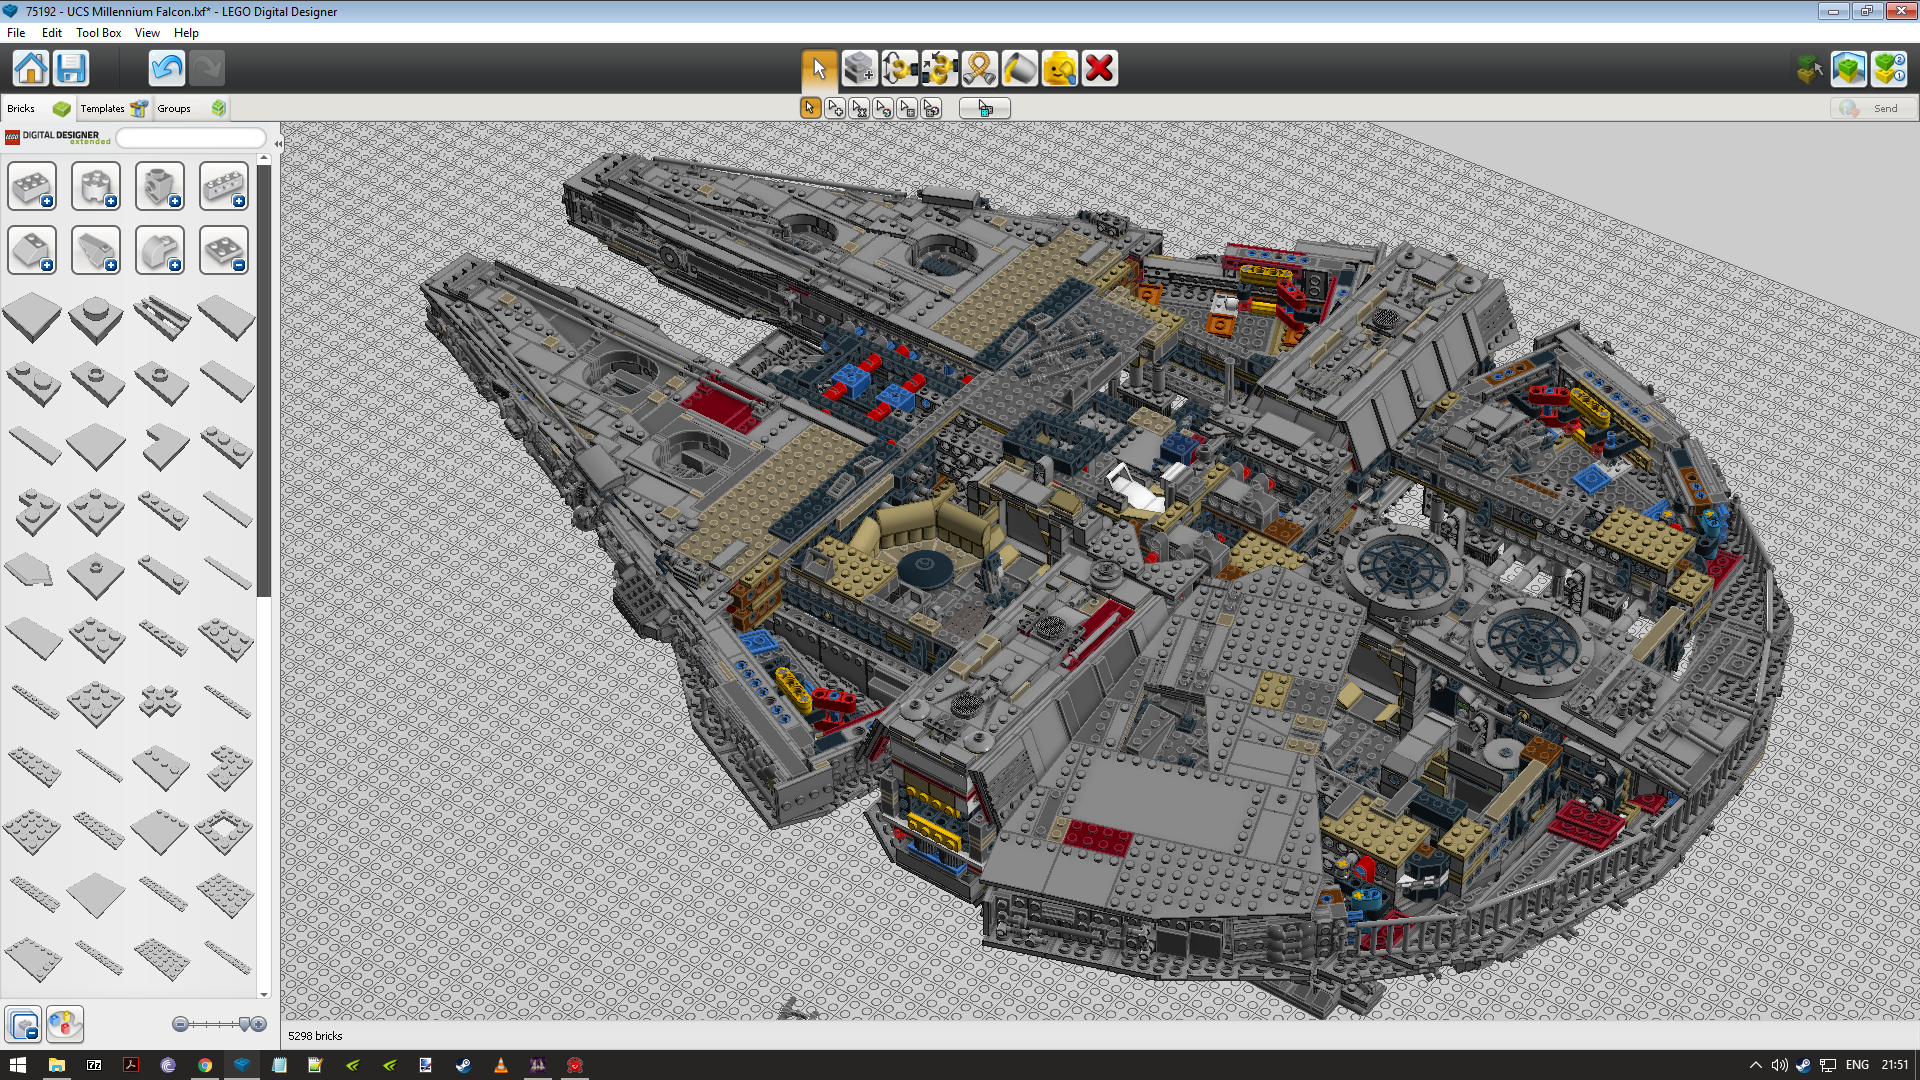 UCS Millennium Falcon Stage 954 by kevinflemming1982 on